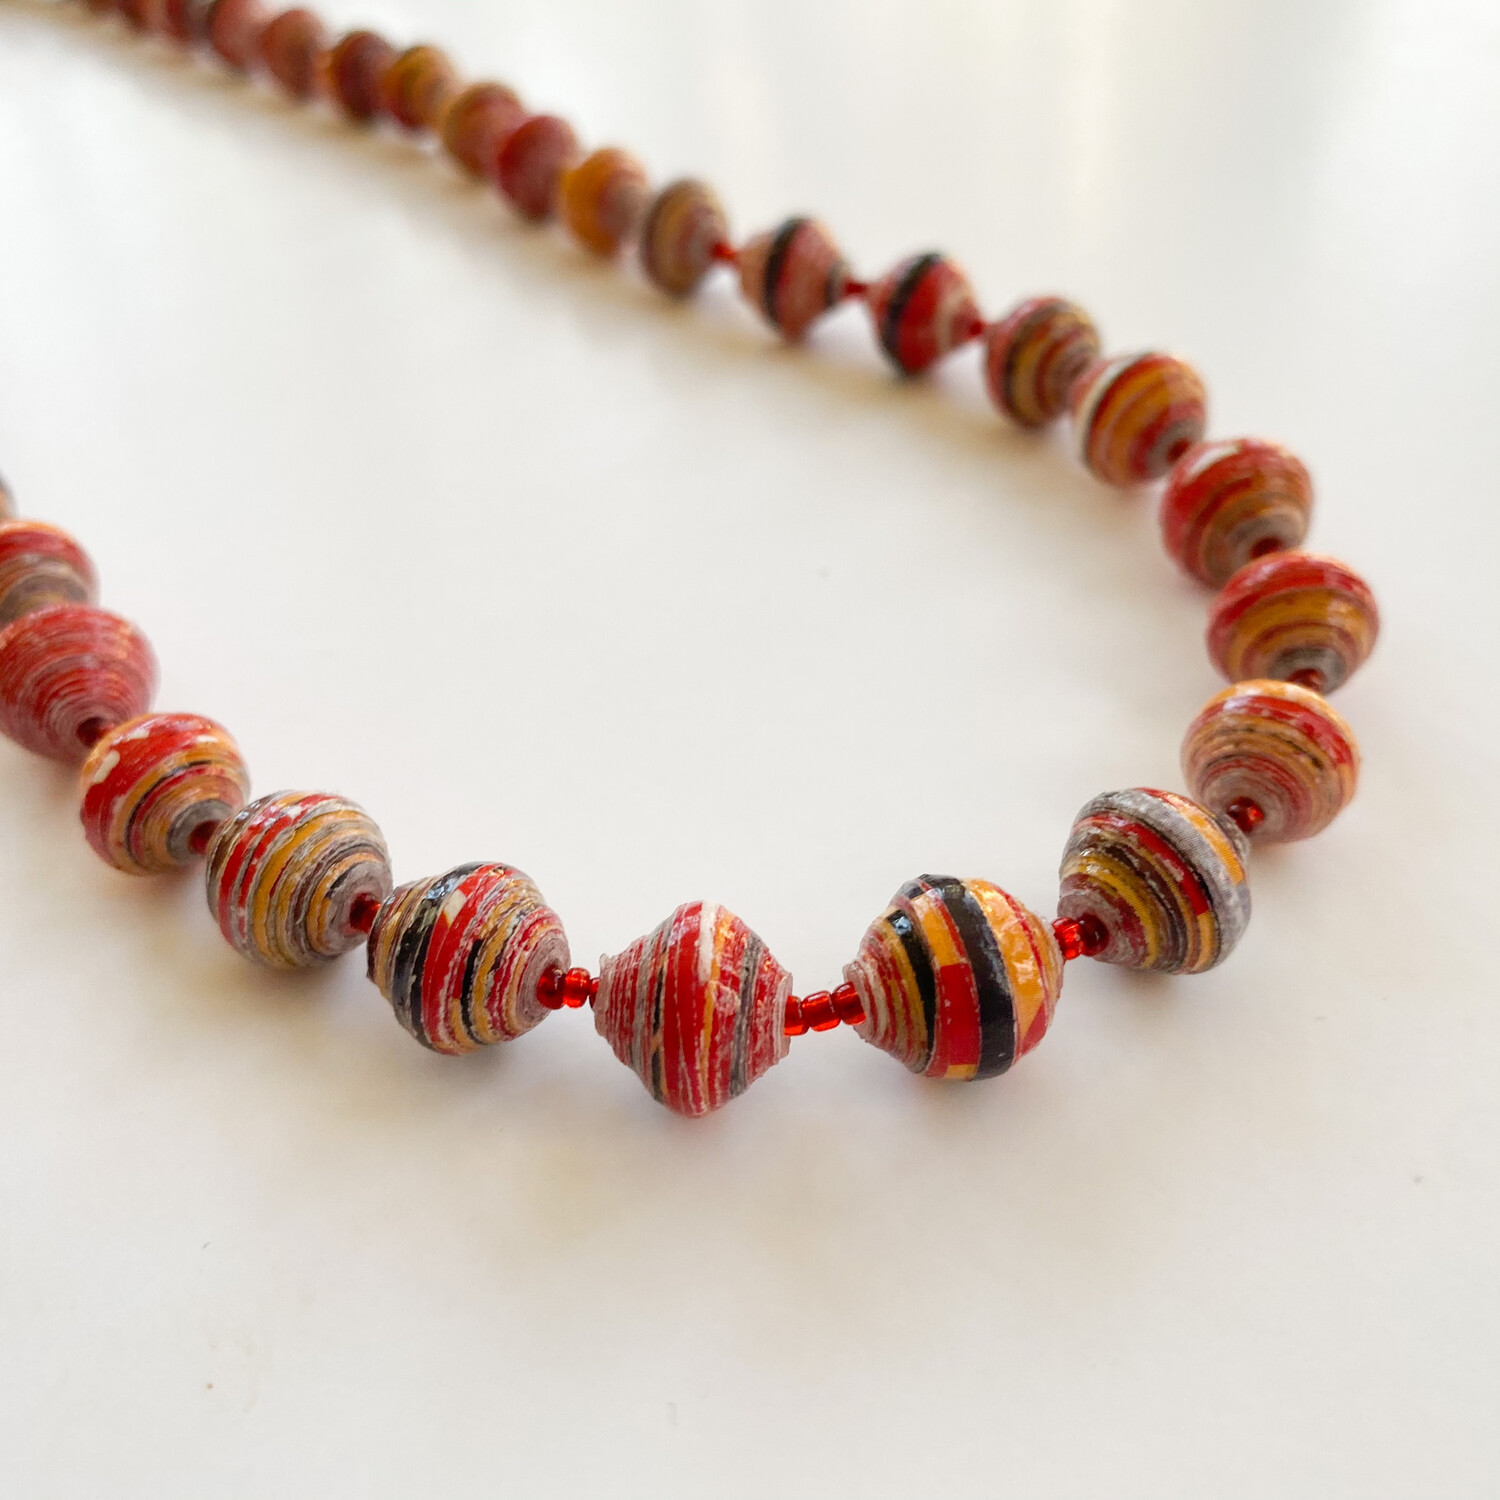 Ssese necklace